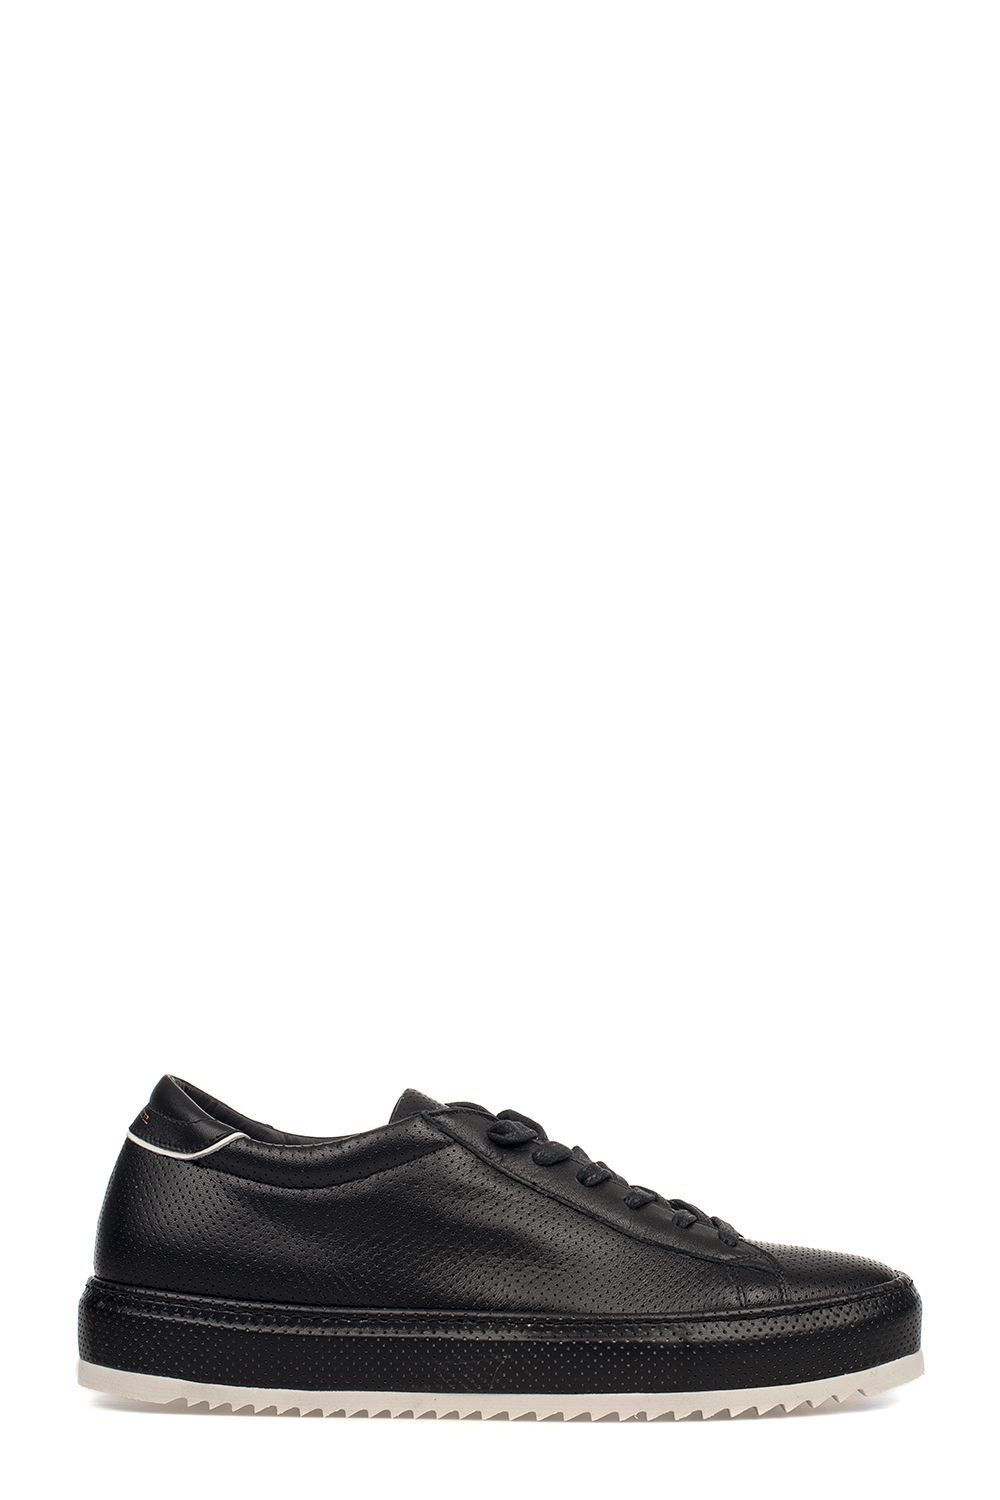 Black Noah Perfore Leather Sneakers